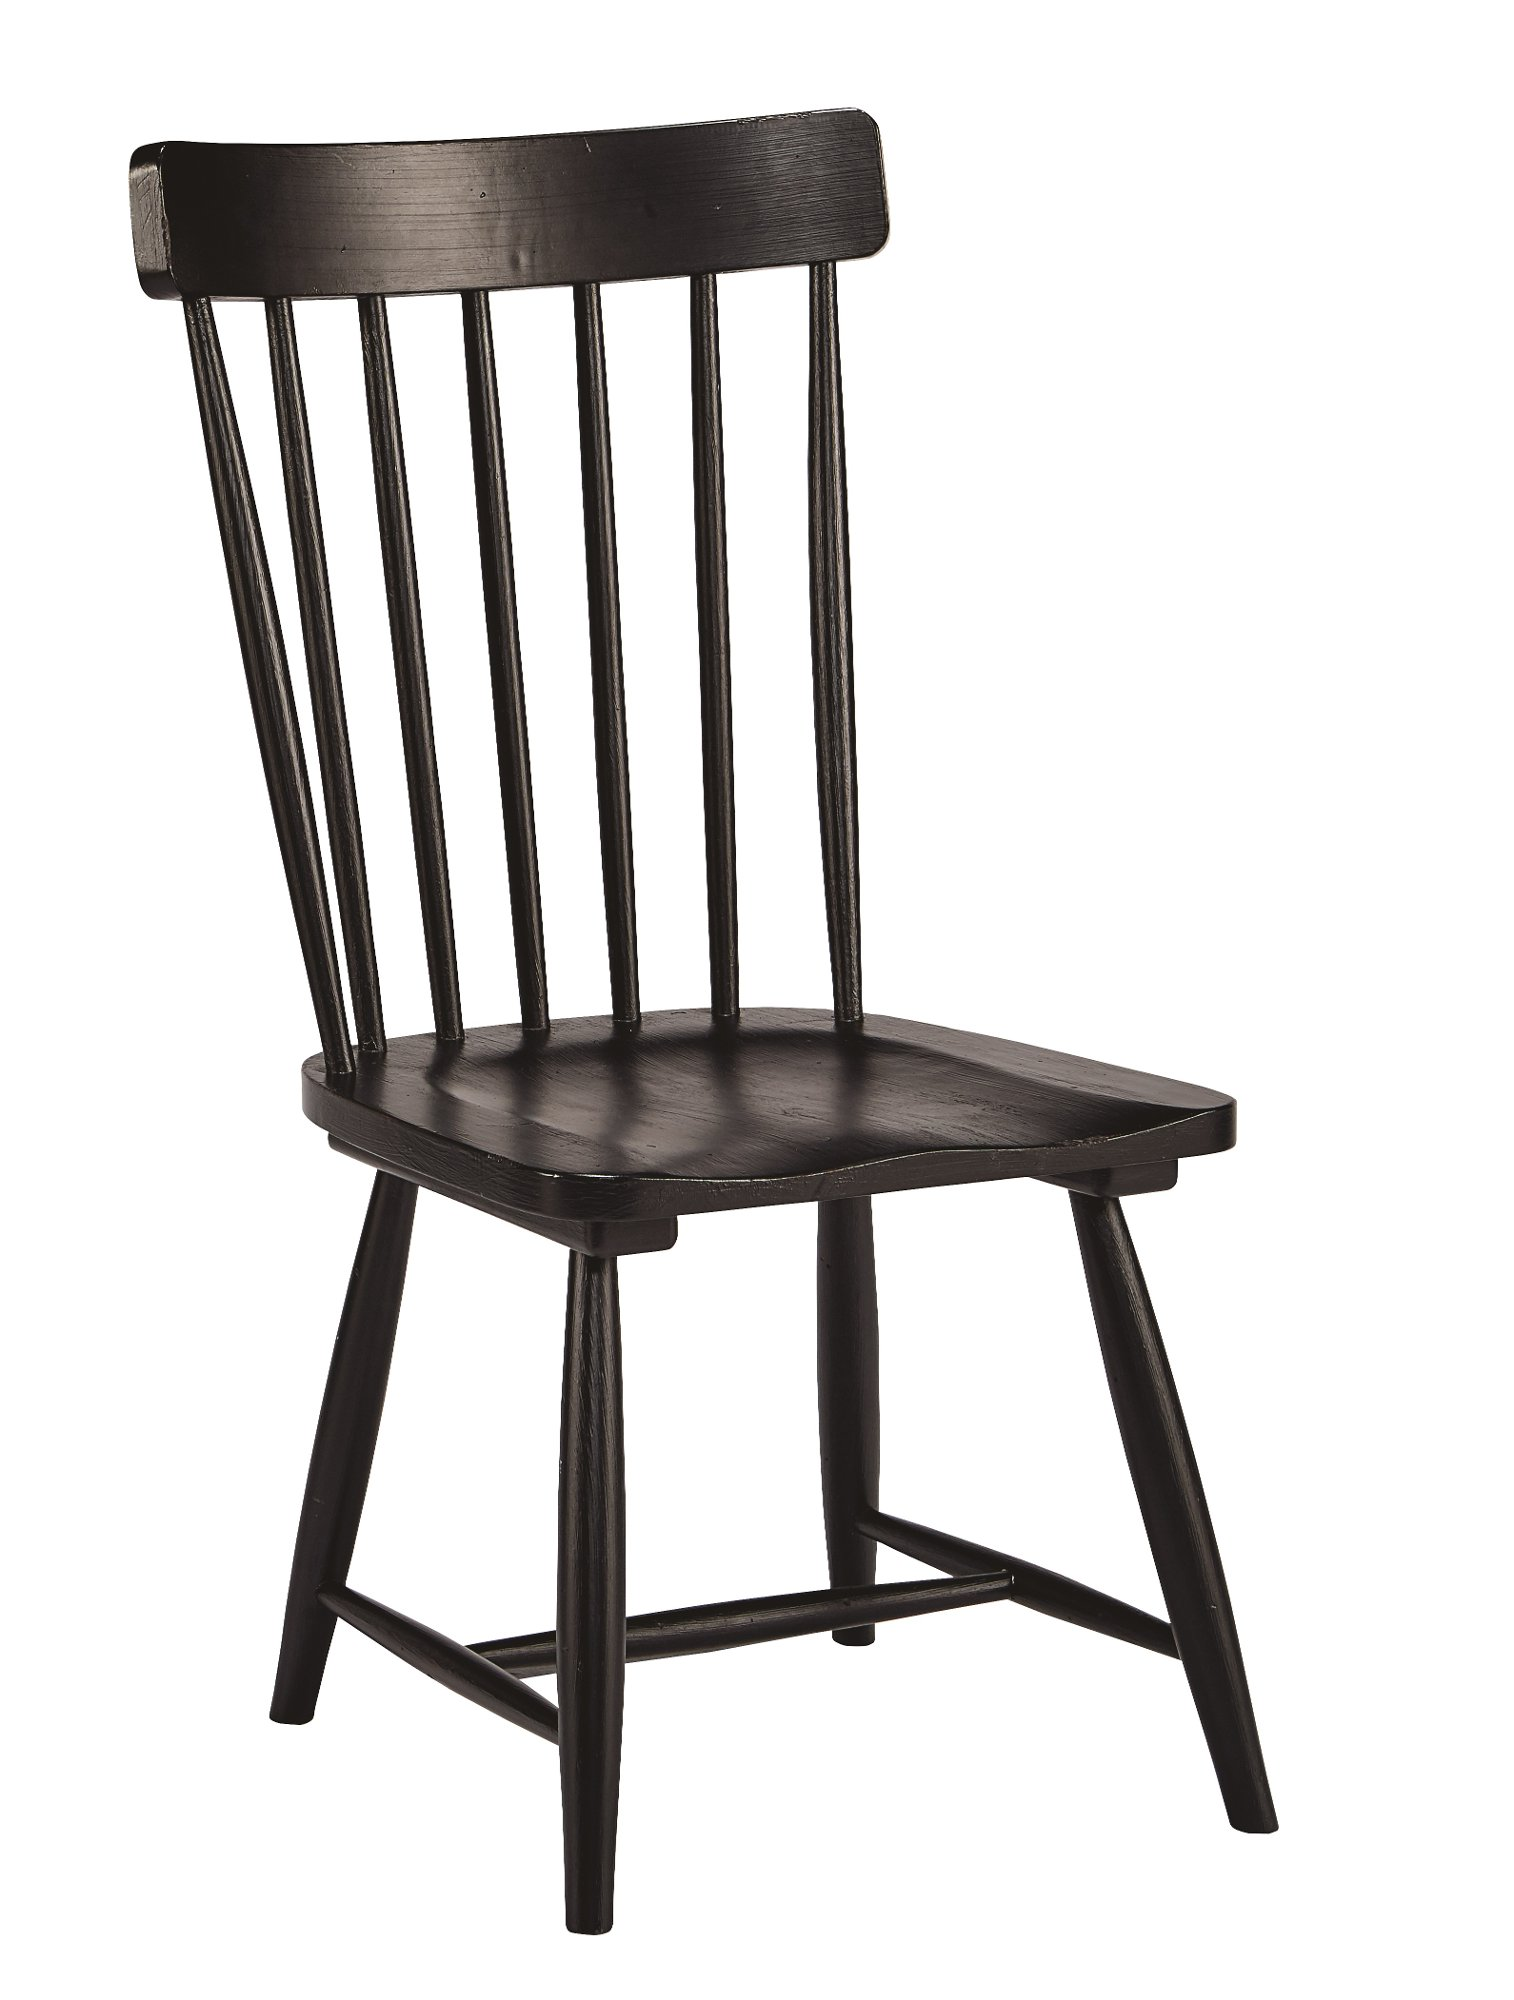 Magnolia home furniture white and black 7 piece dining set for Long back dining chairs